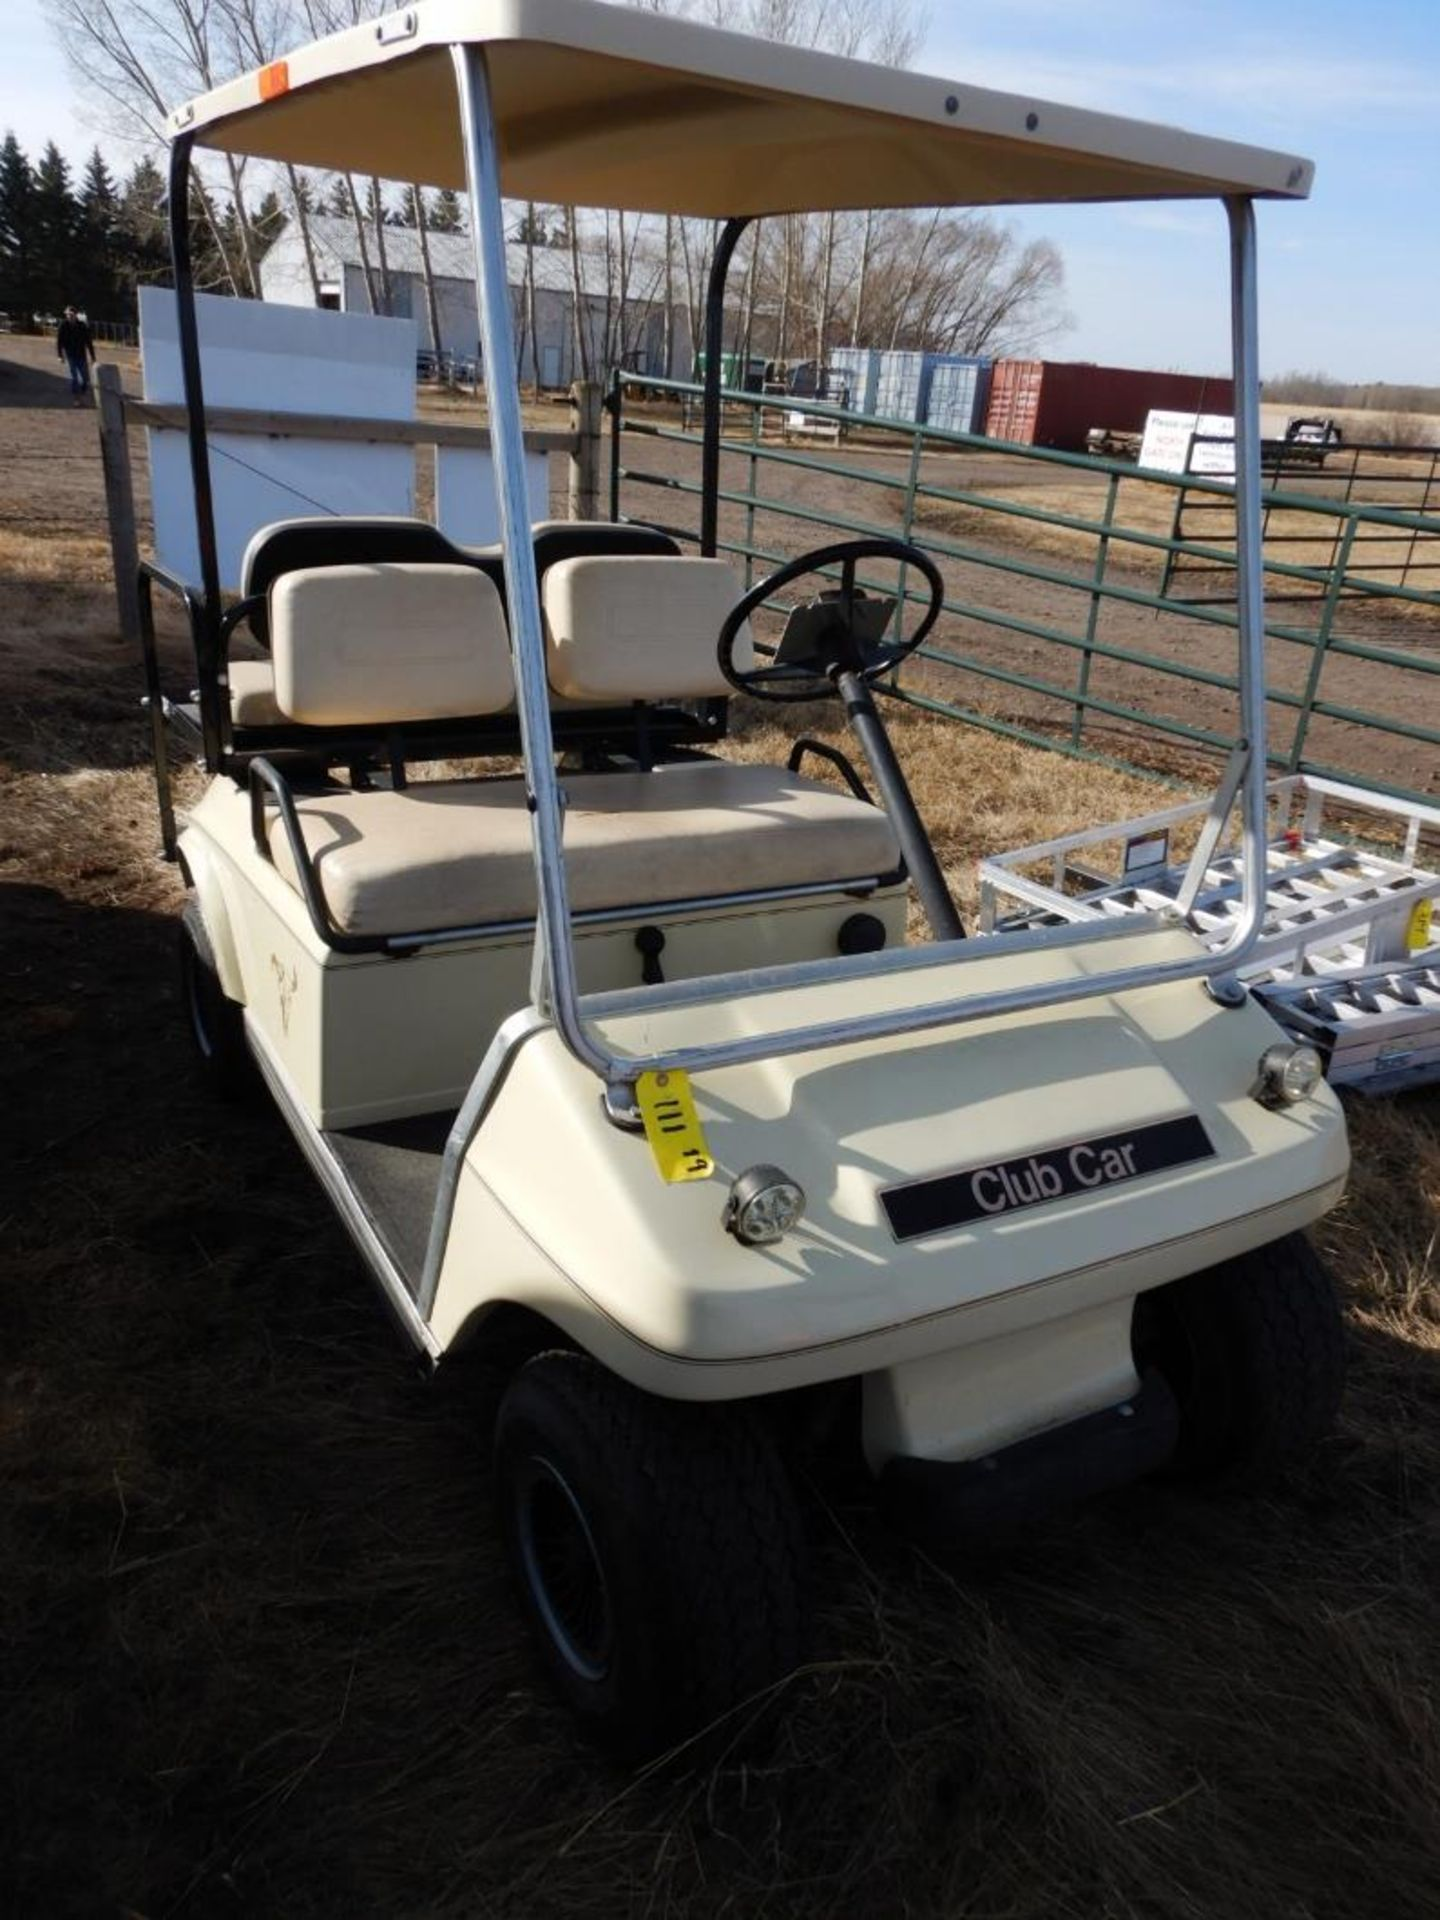 CLUB CAR GAS POWERED GOLF CART S/N AG9132254635 W/NEW BRAKES, BATTERY, REAR SEAT - Image 2 of 6